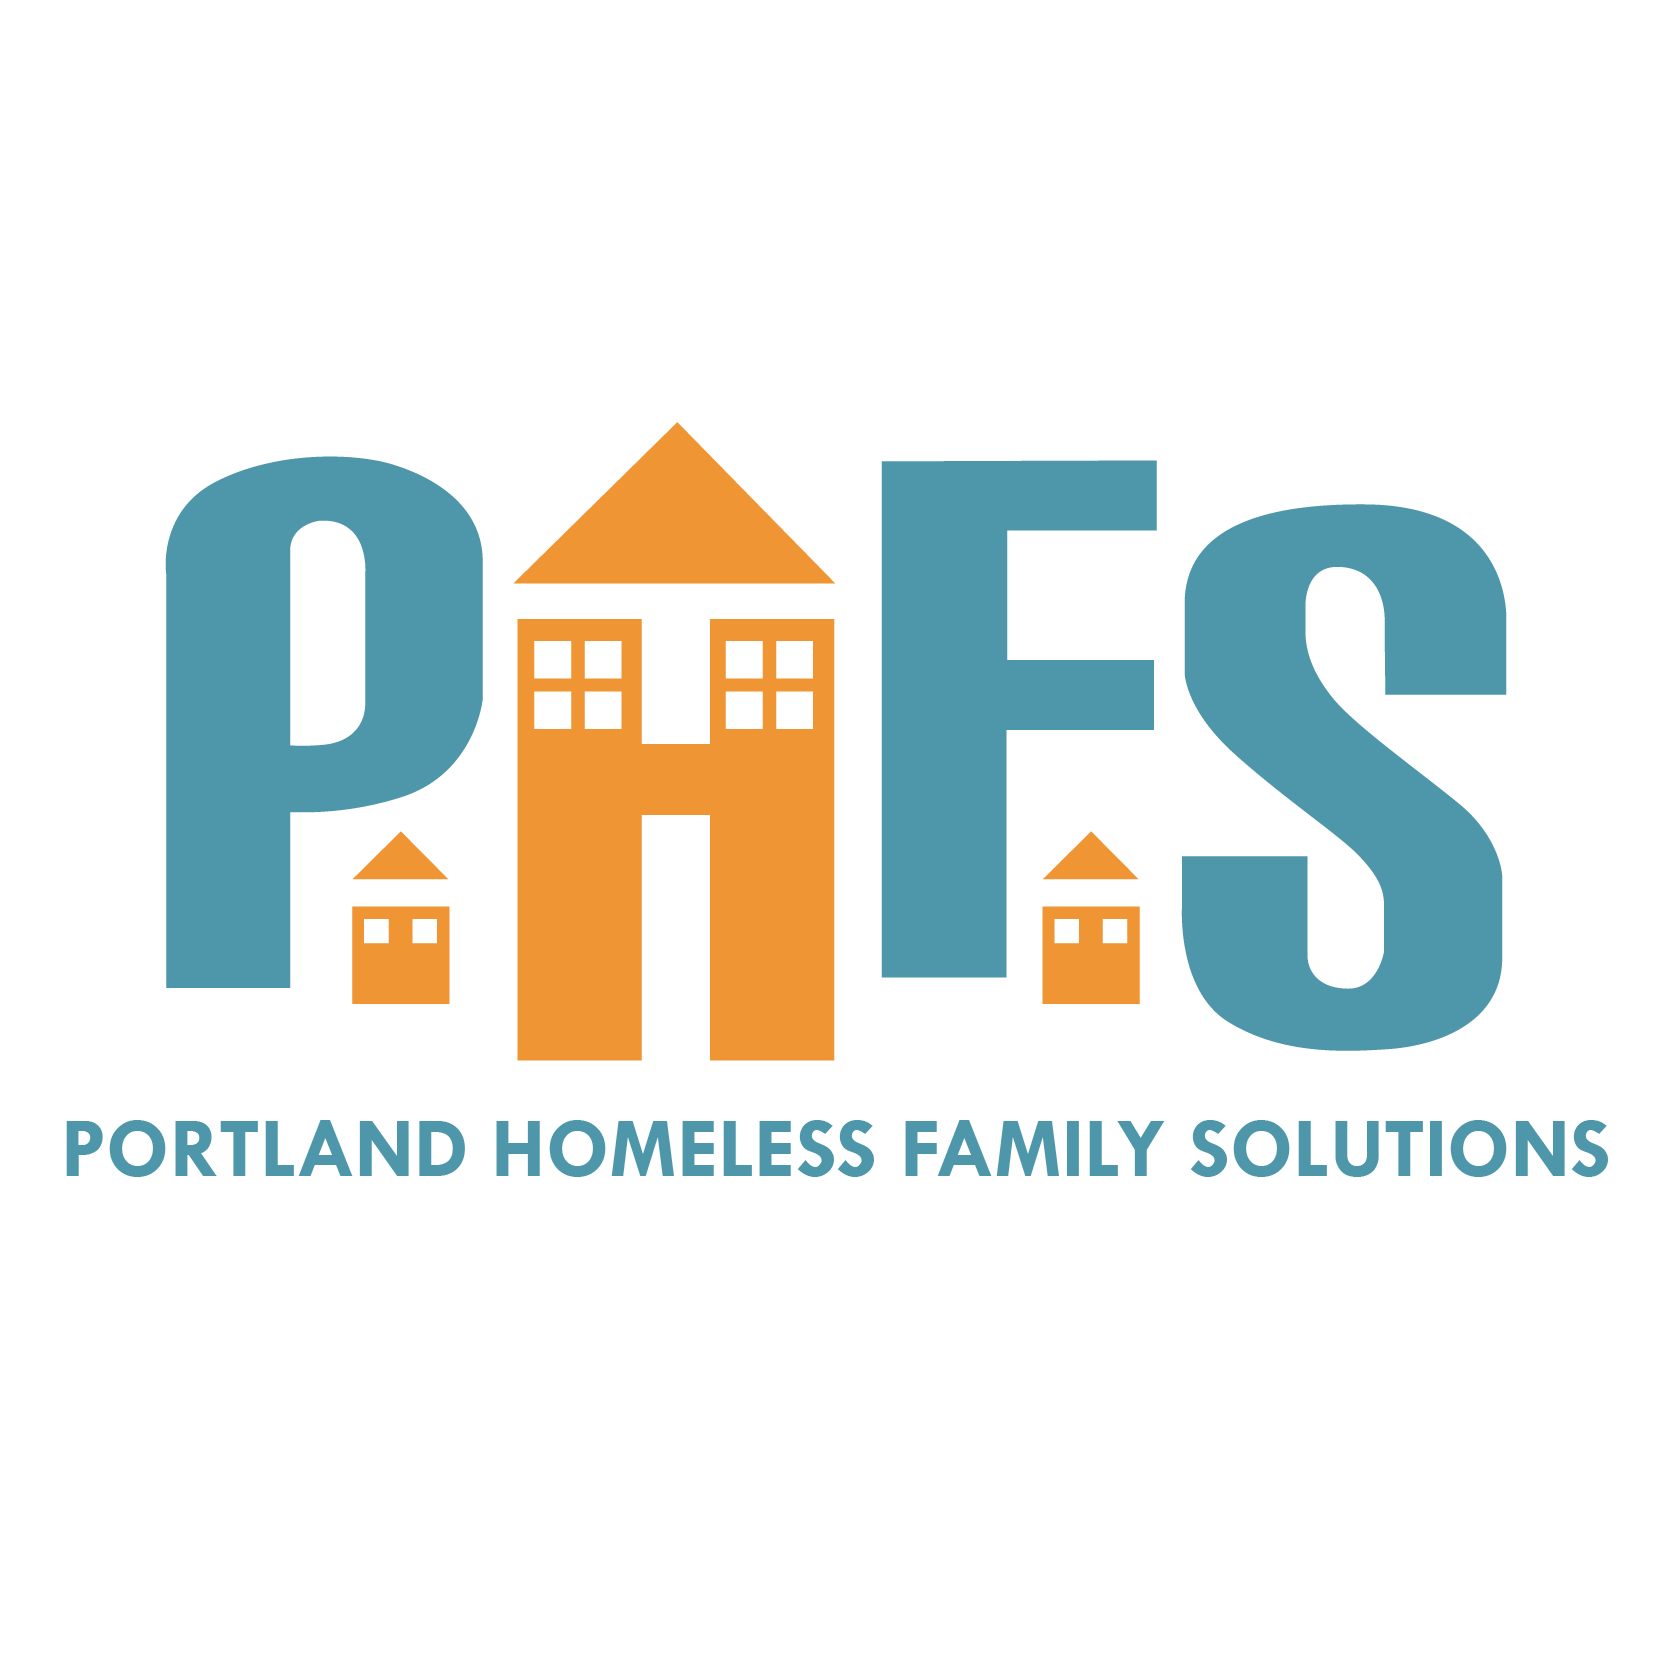 PORTLAND HOMELESS FAMILIES SOLUTIONS   Portland Homeless Family Solutions empowers homeless families with children to get back into housing and to stay there long-term.